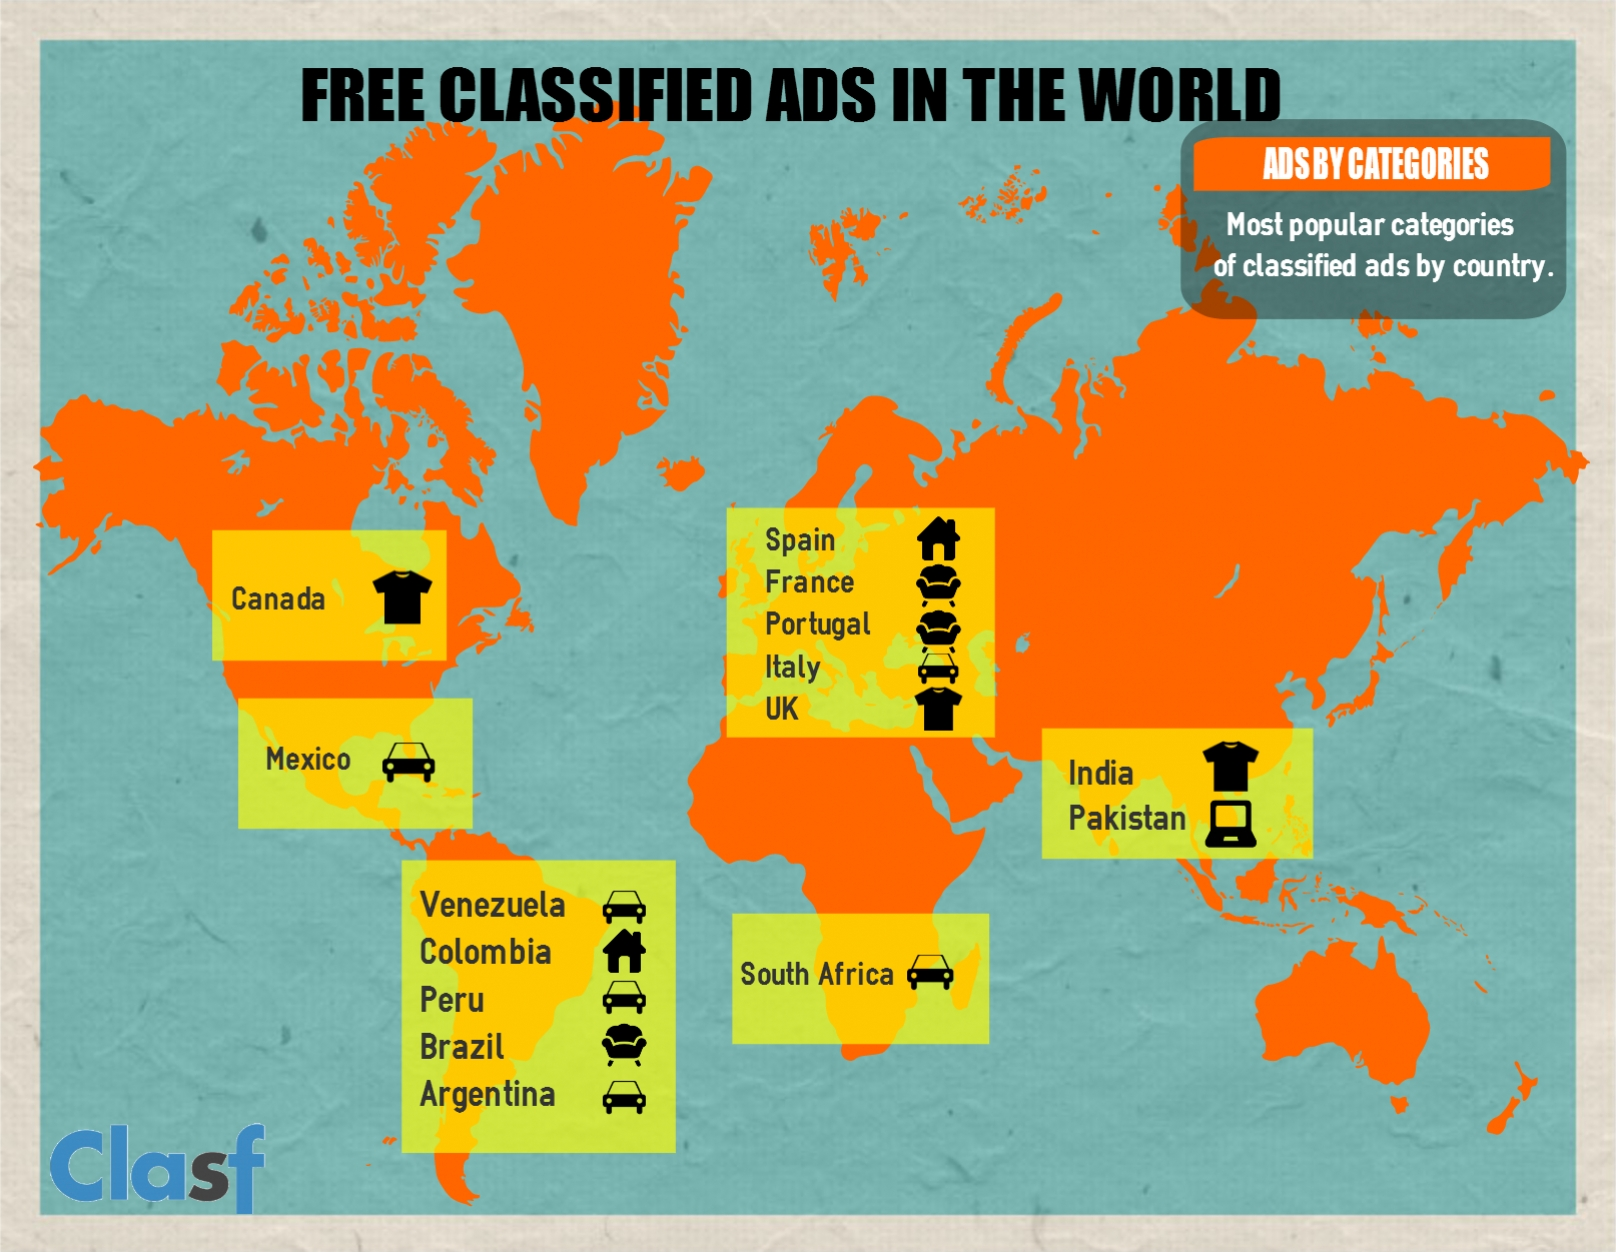 Classified ads in the world